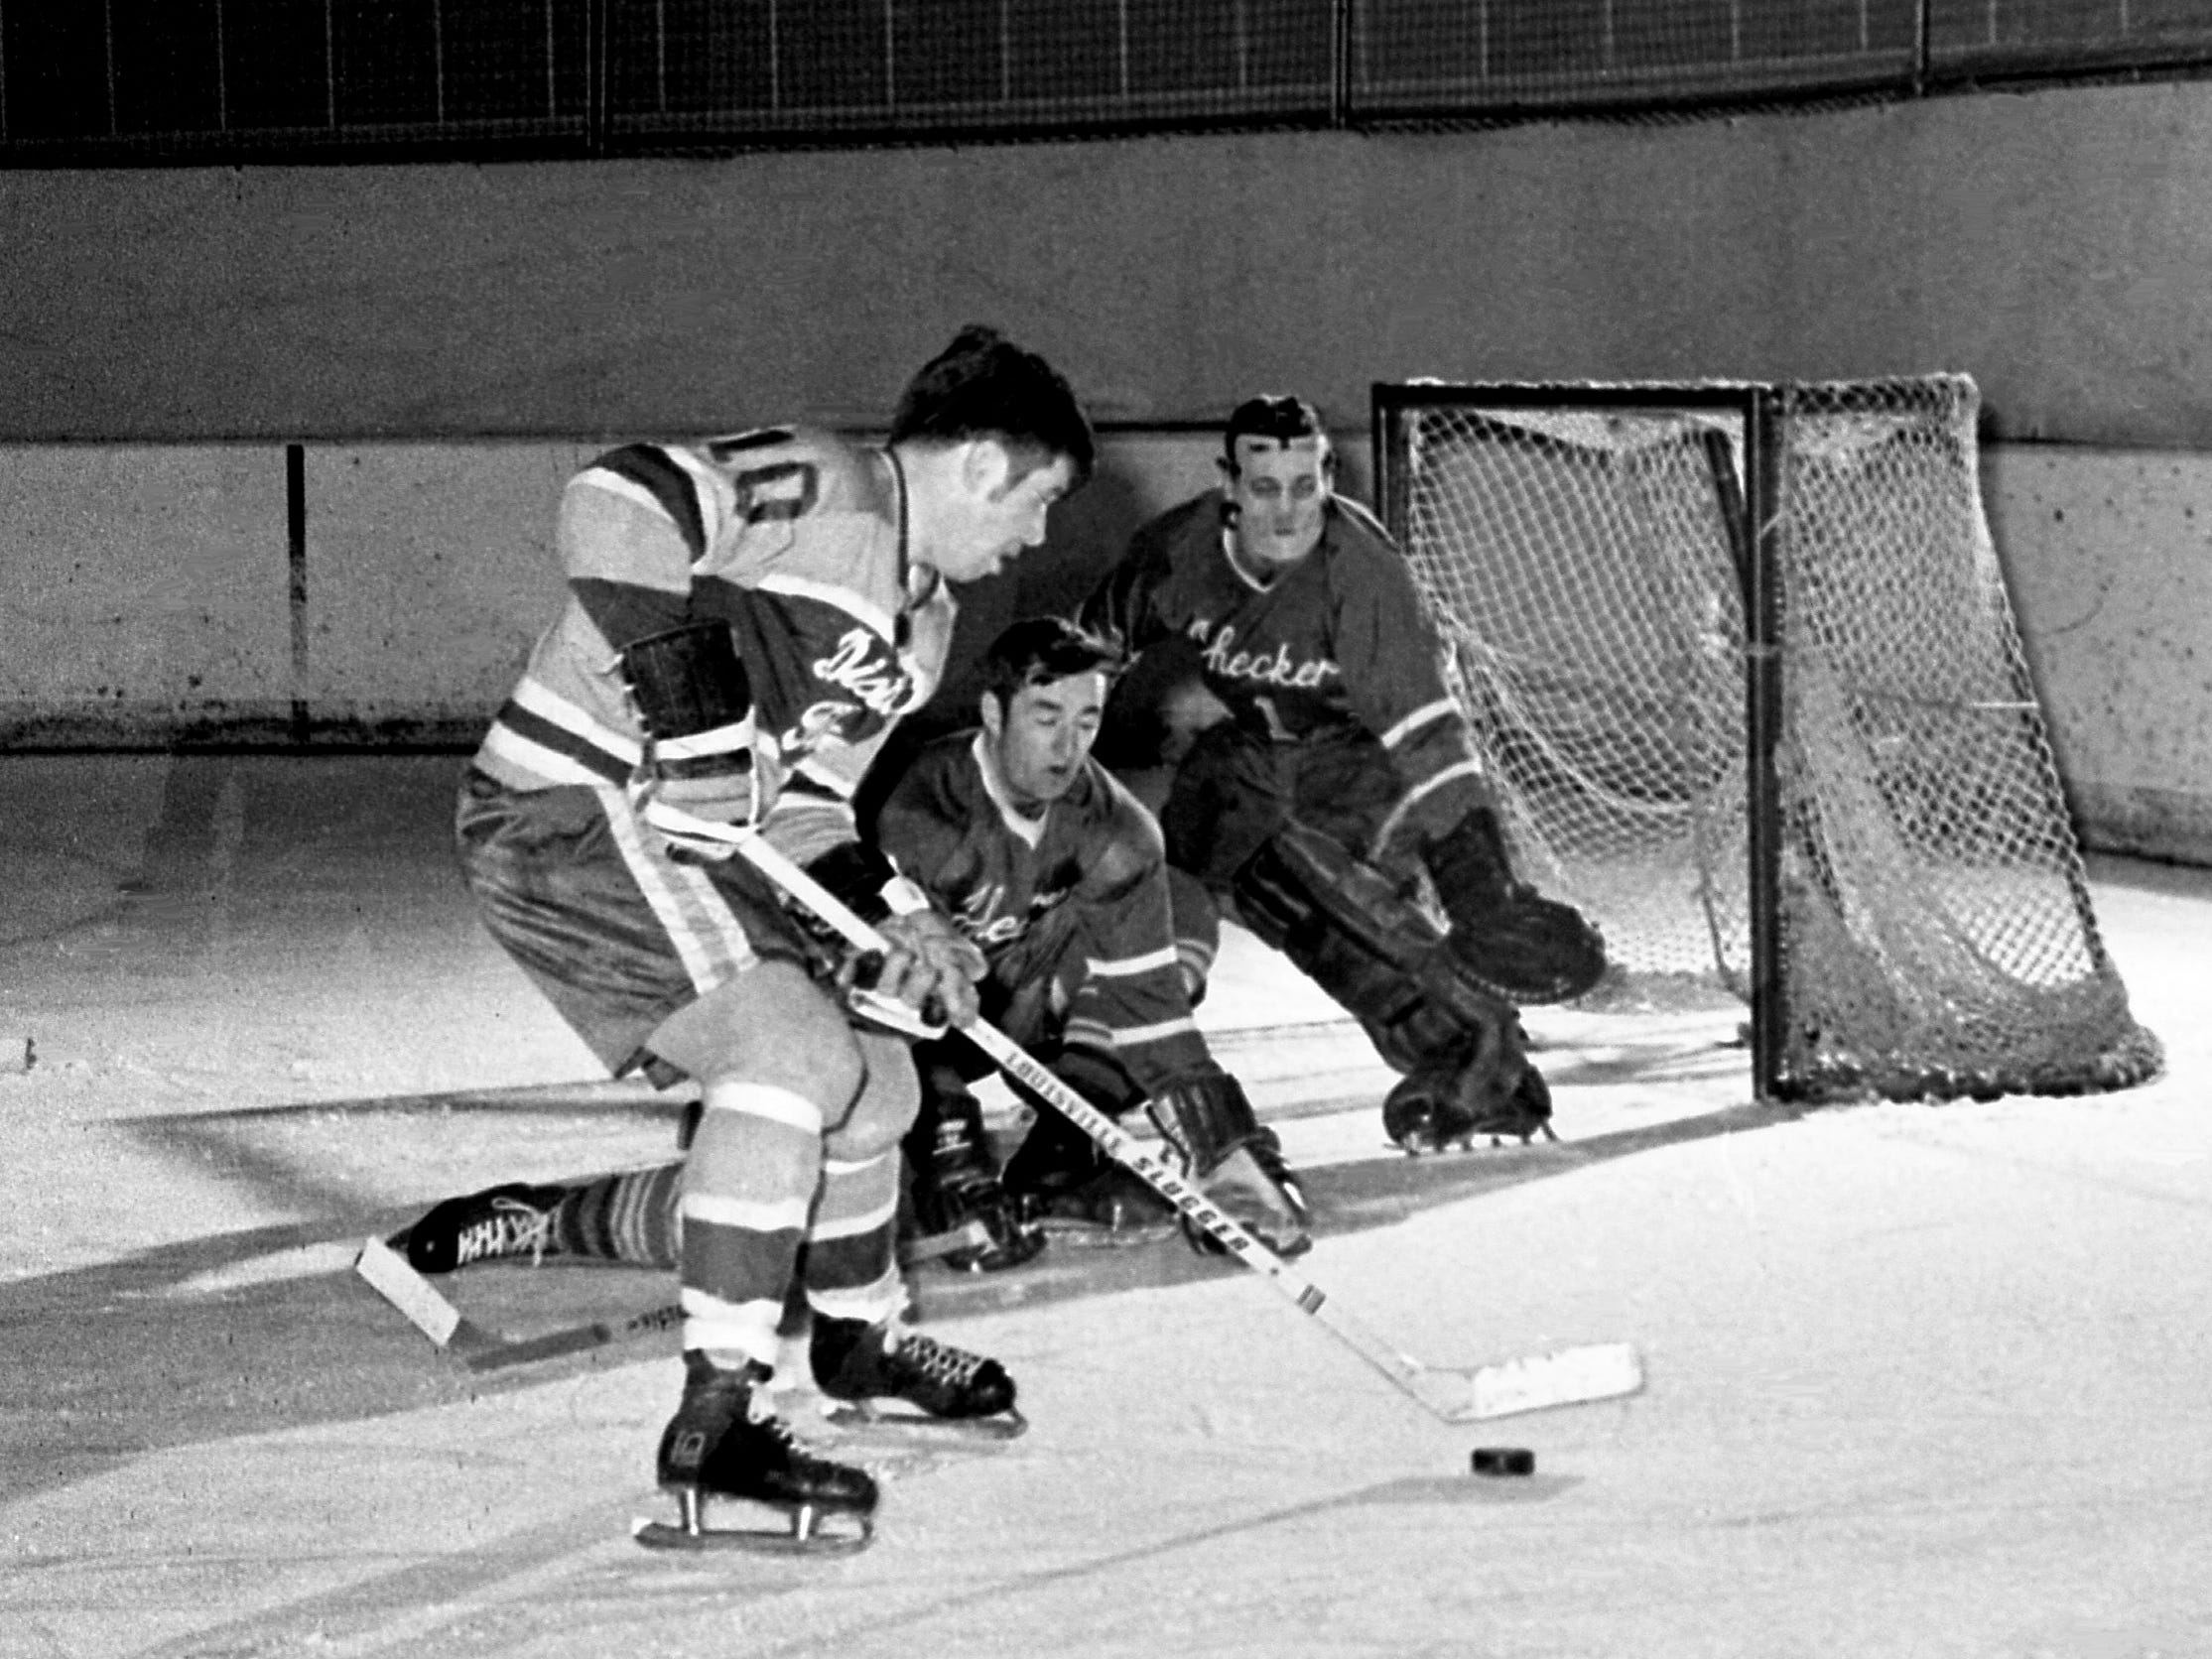 Despite the effort of Charlotte Checkers defenseman Frank Golembrosky, center, and goalie Bob Whidden, Nashville Dixie Flyers winger Andre Lajeunesse (10) is ready to score the first goal for the Flyers in their 8-1 victory at Municipal Auditorium on Dec. 17, 1968.